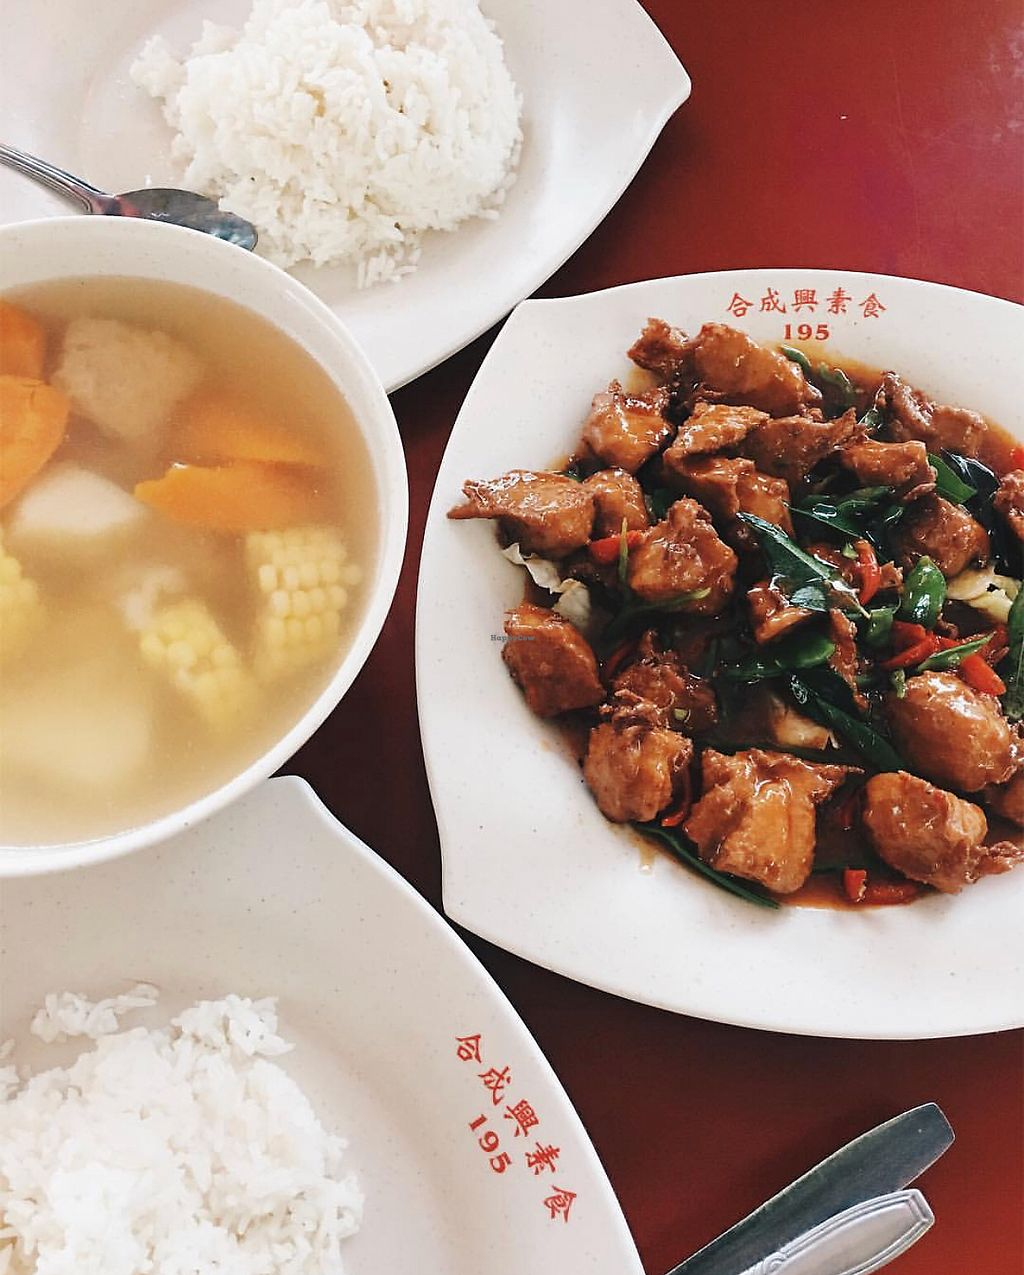 "Photo of Hup Seng Heng Vegetarian  by <a href=""/members/profile/CherylQuincy"">CherylQuincy</a> <br/> Tom Yun Diced Chicken and potato soup <br/> January 30, 2018  - <a href='/contact/abuse/image/78745/352769'>Report</a>"